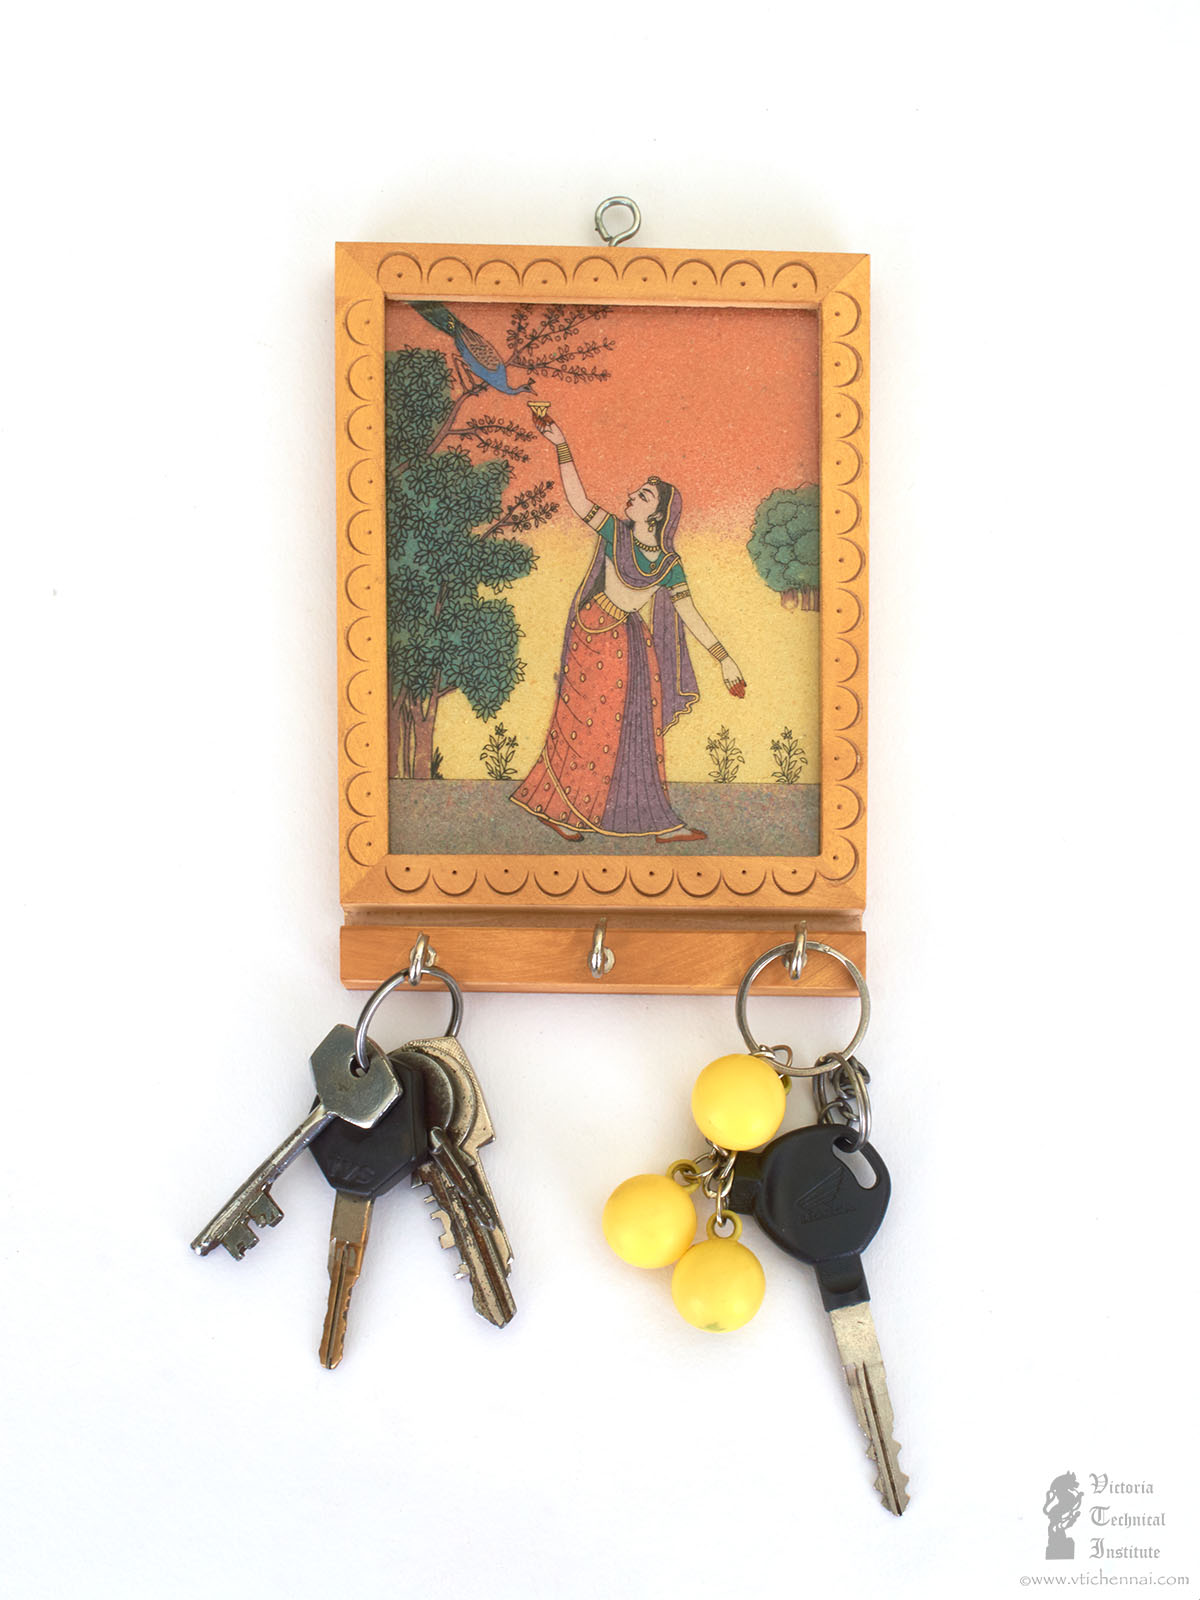 17 Cm 17 Cm Handmade Whitewood Gem Stone Painting Key Holder Vti Chennai